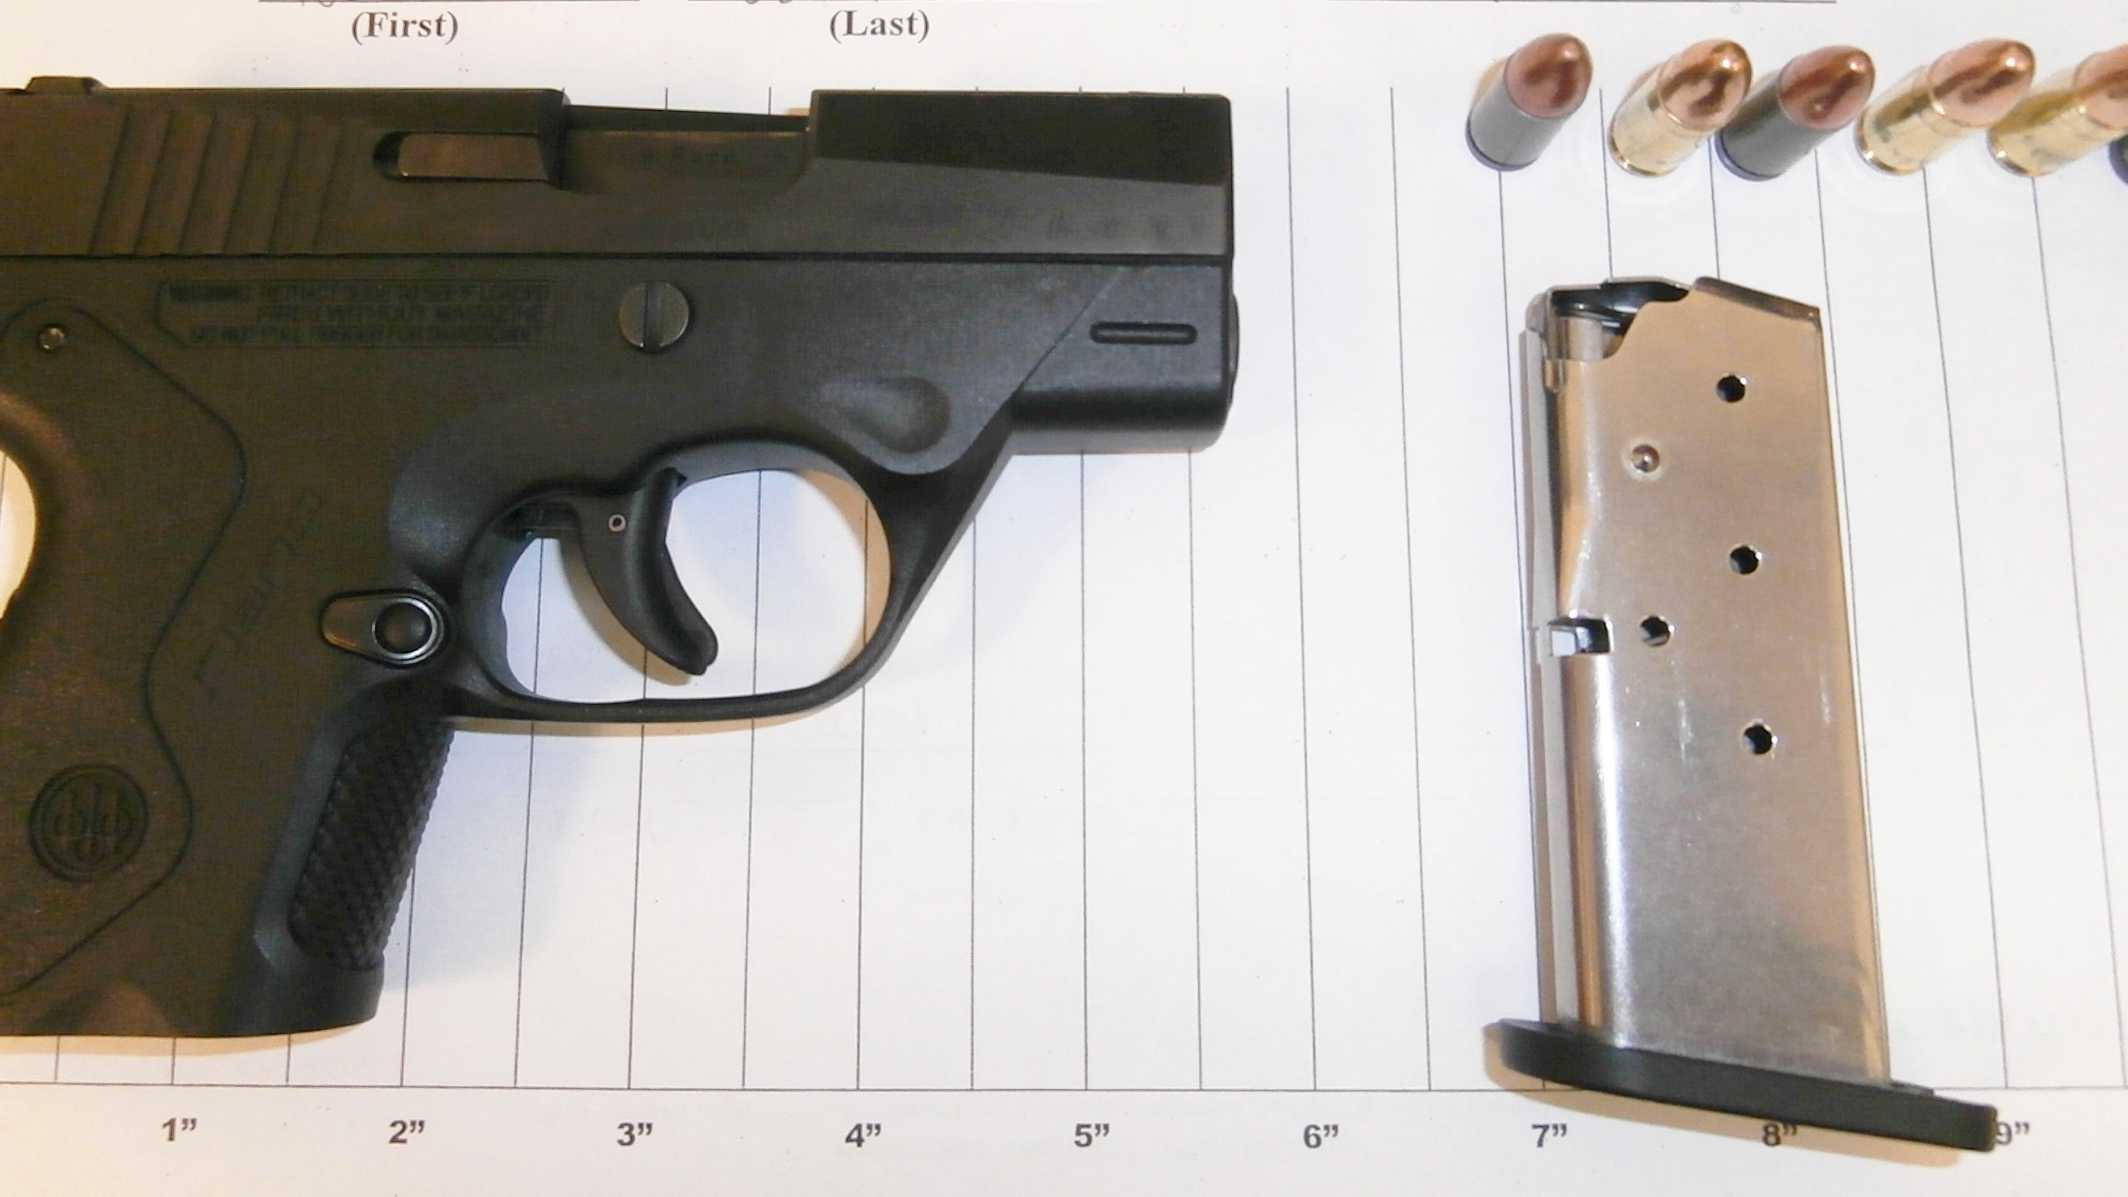 TSA officers caught this handgun in a Clinton County passenger's carry-on baggage.